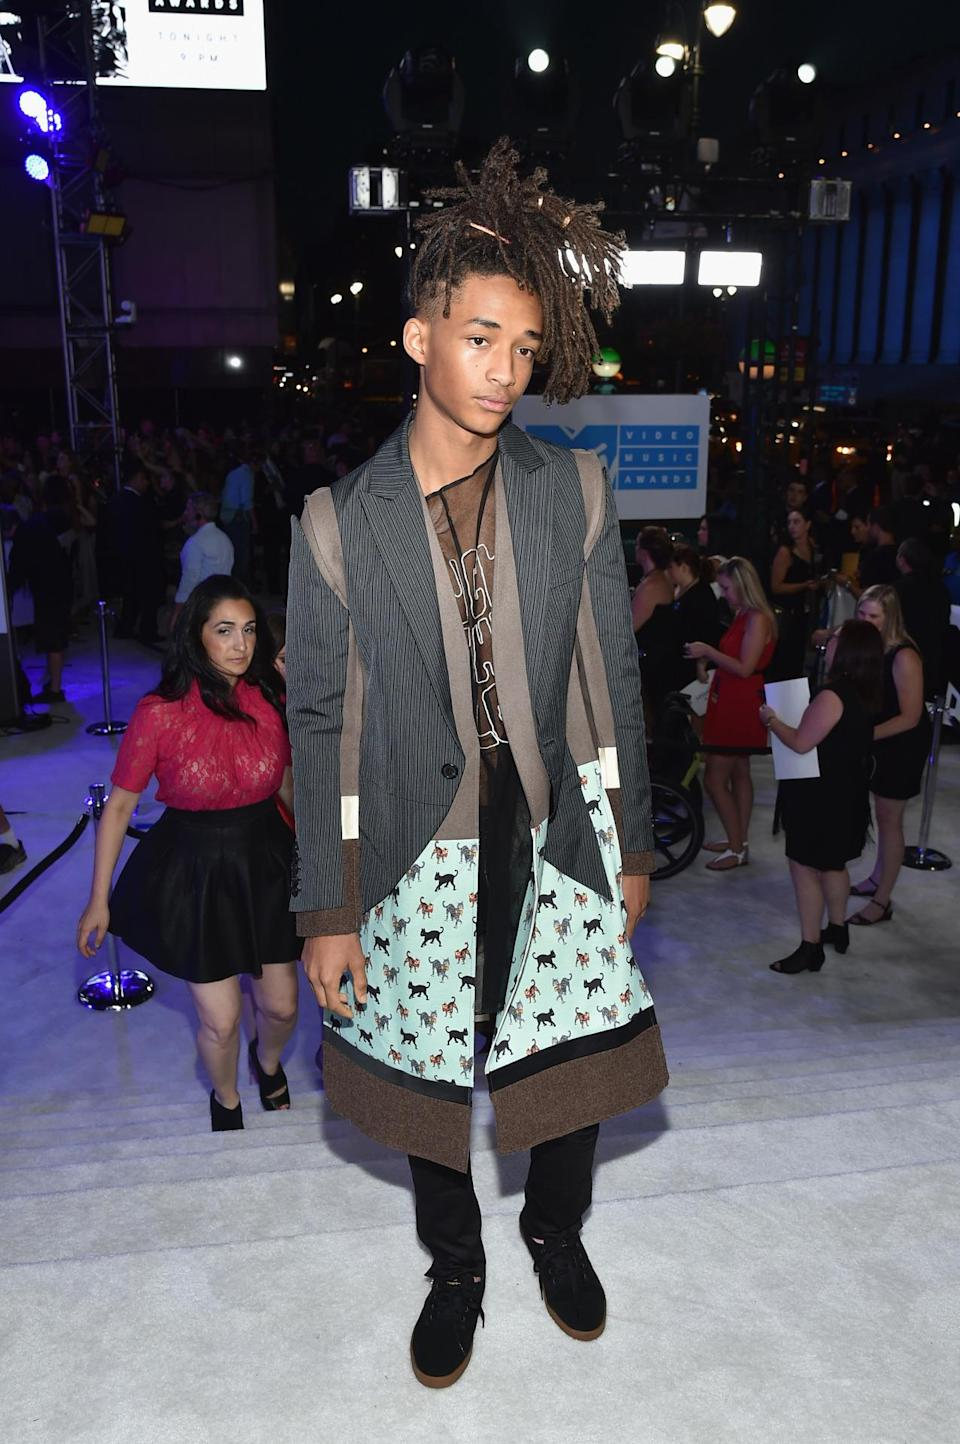 <p>Will Smith's 18-year-old son elected to wear a cat print jacket. </p><p><i>(Photo: Getty Images)</i><br></p>